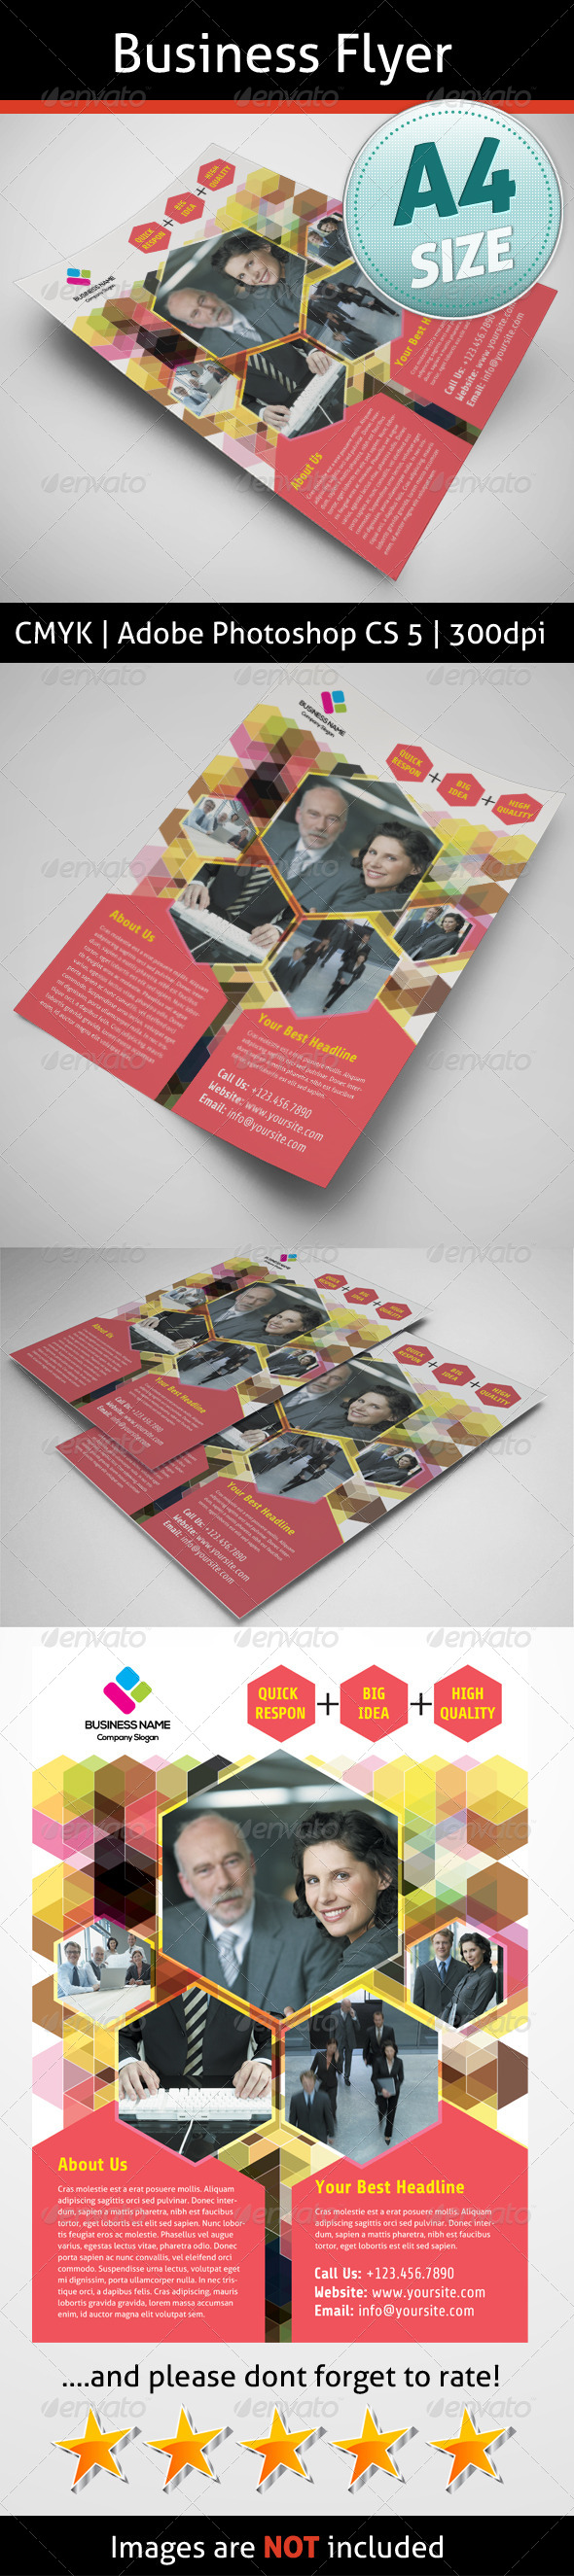 GraphicRiver Business Flyer 5142155